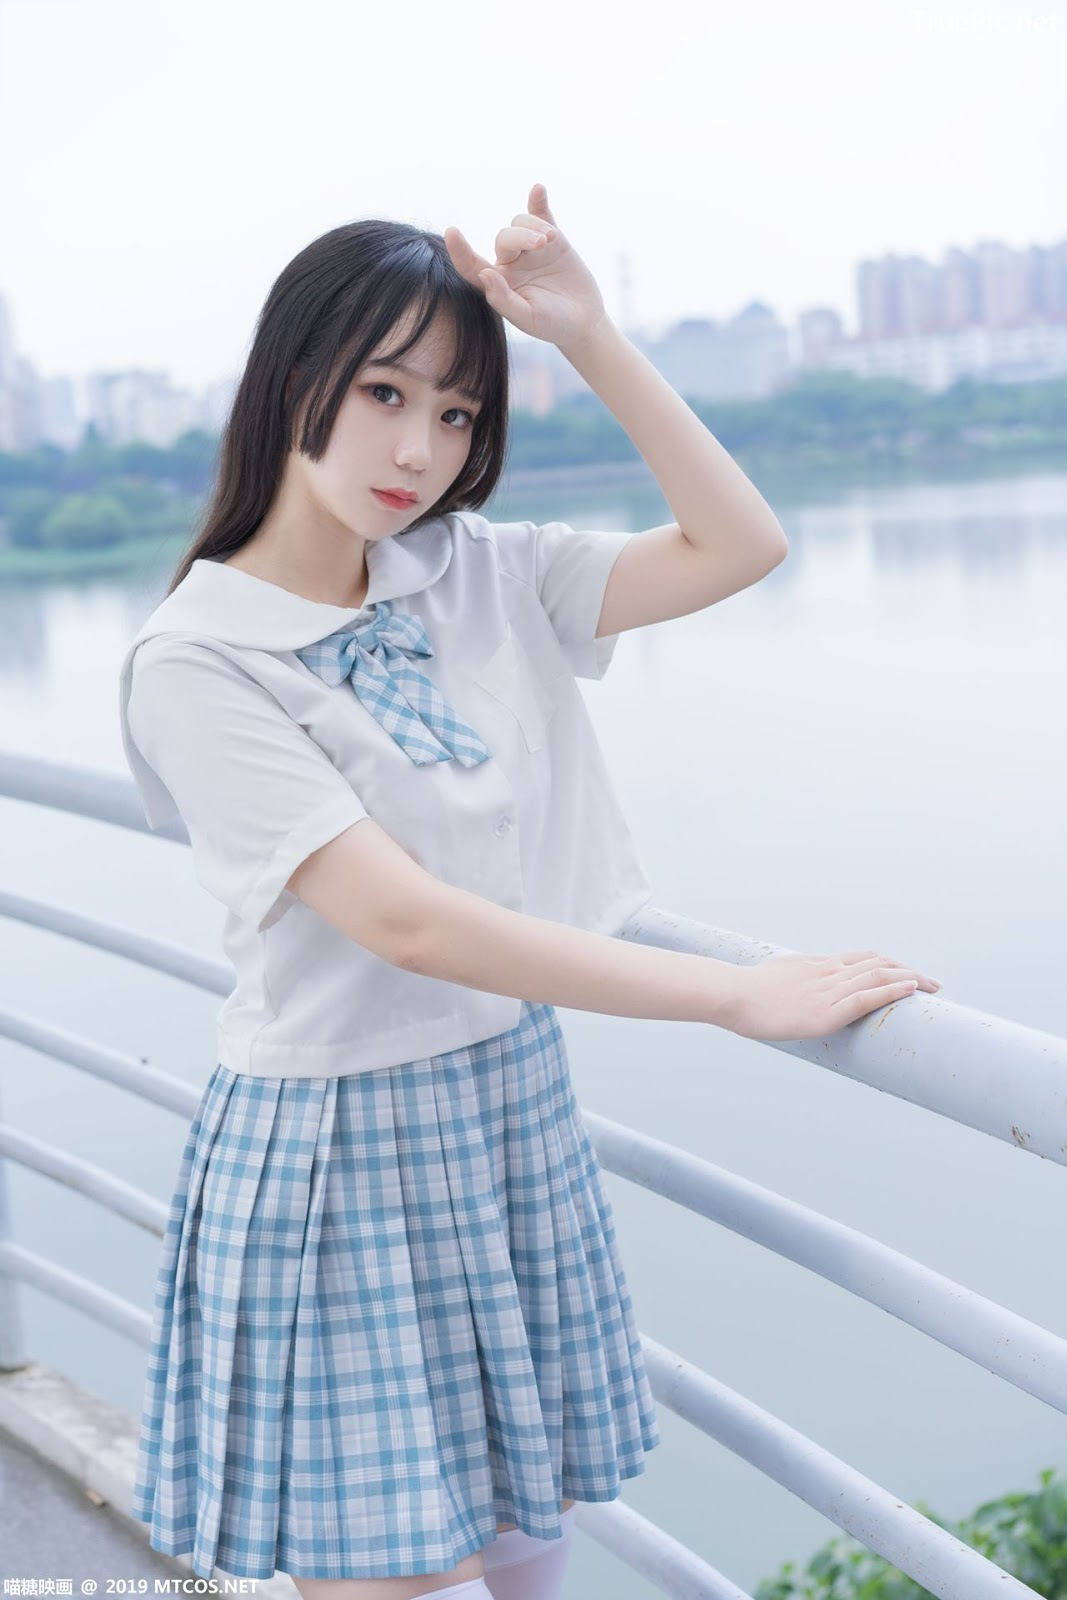 Image [MTCos] 喵糖映画 Vol.015 – Chinese Cute Model - White Shirt and Plaid Skirt - TruePic.net- Picture-10